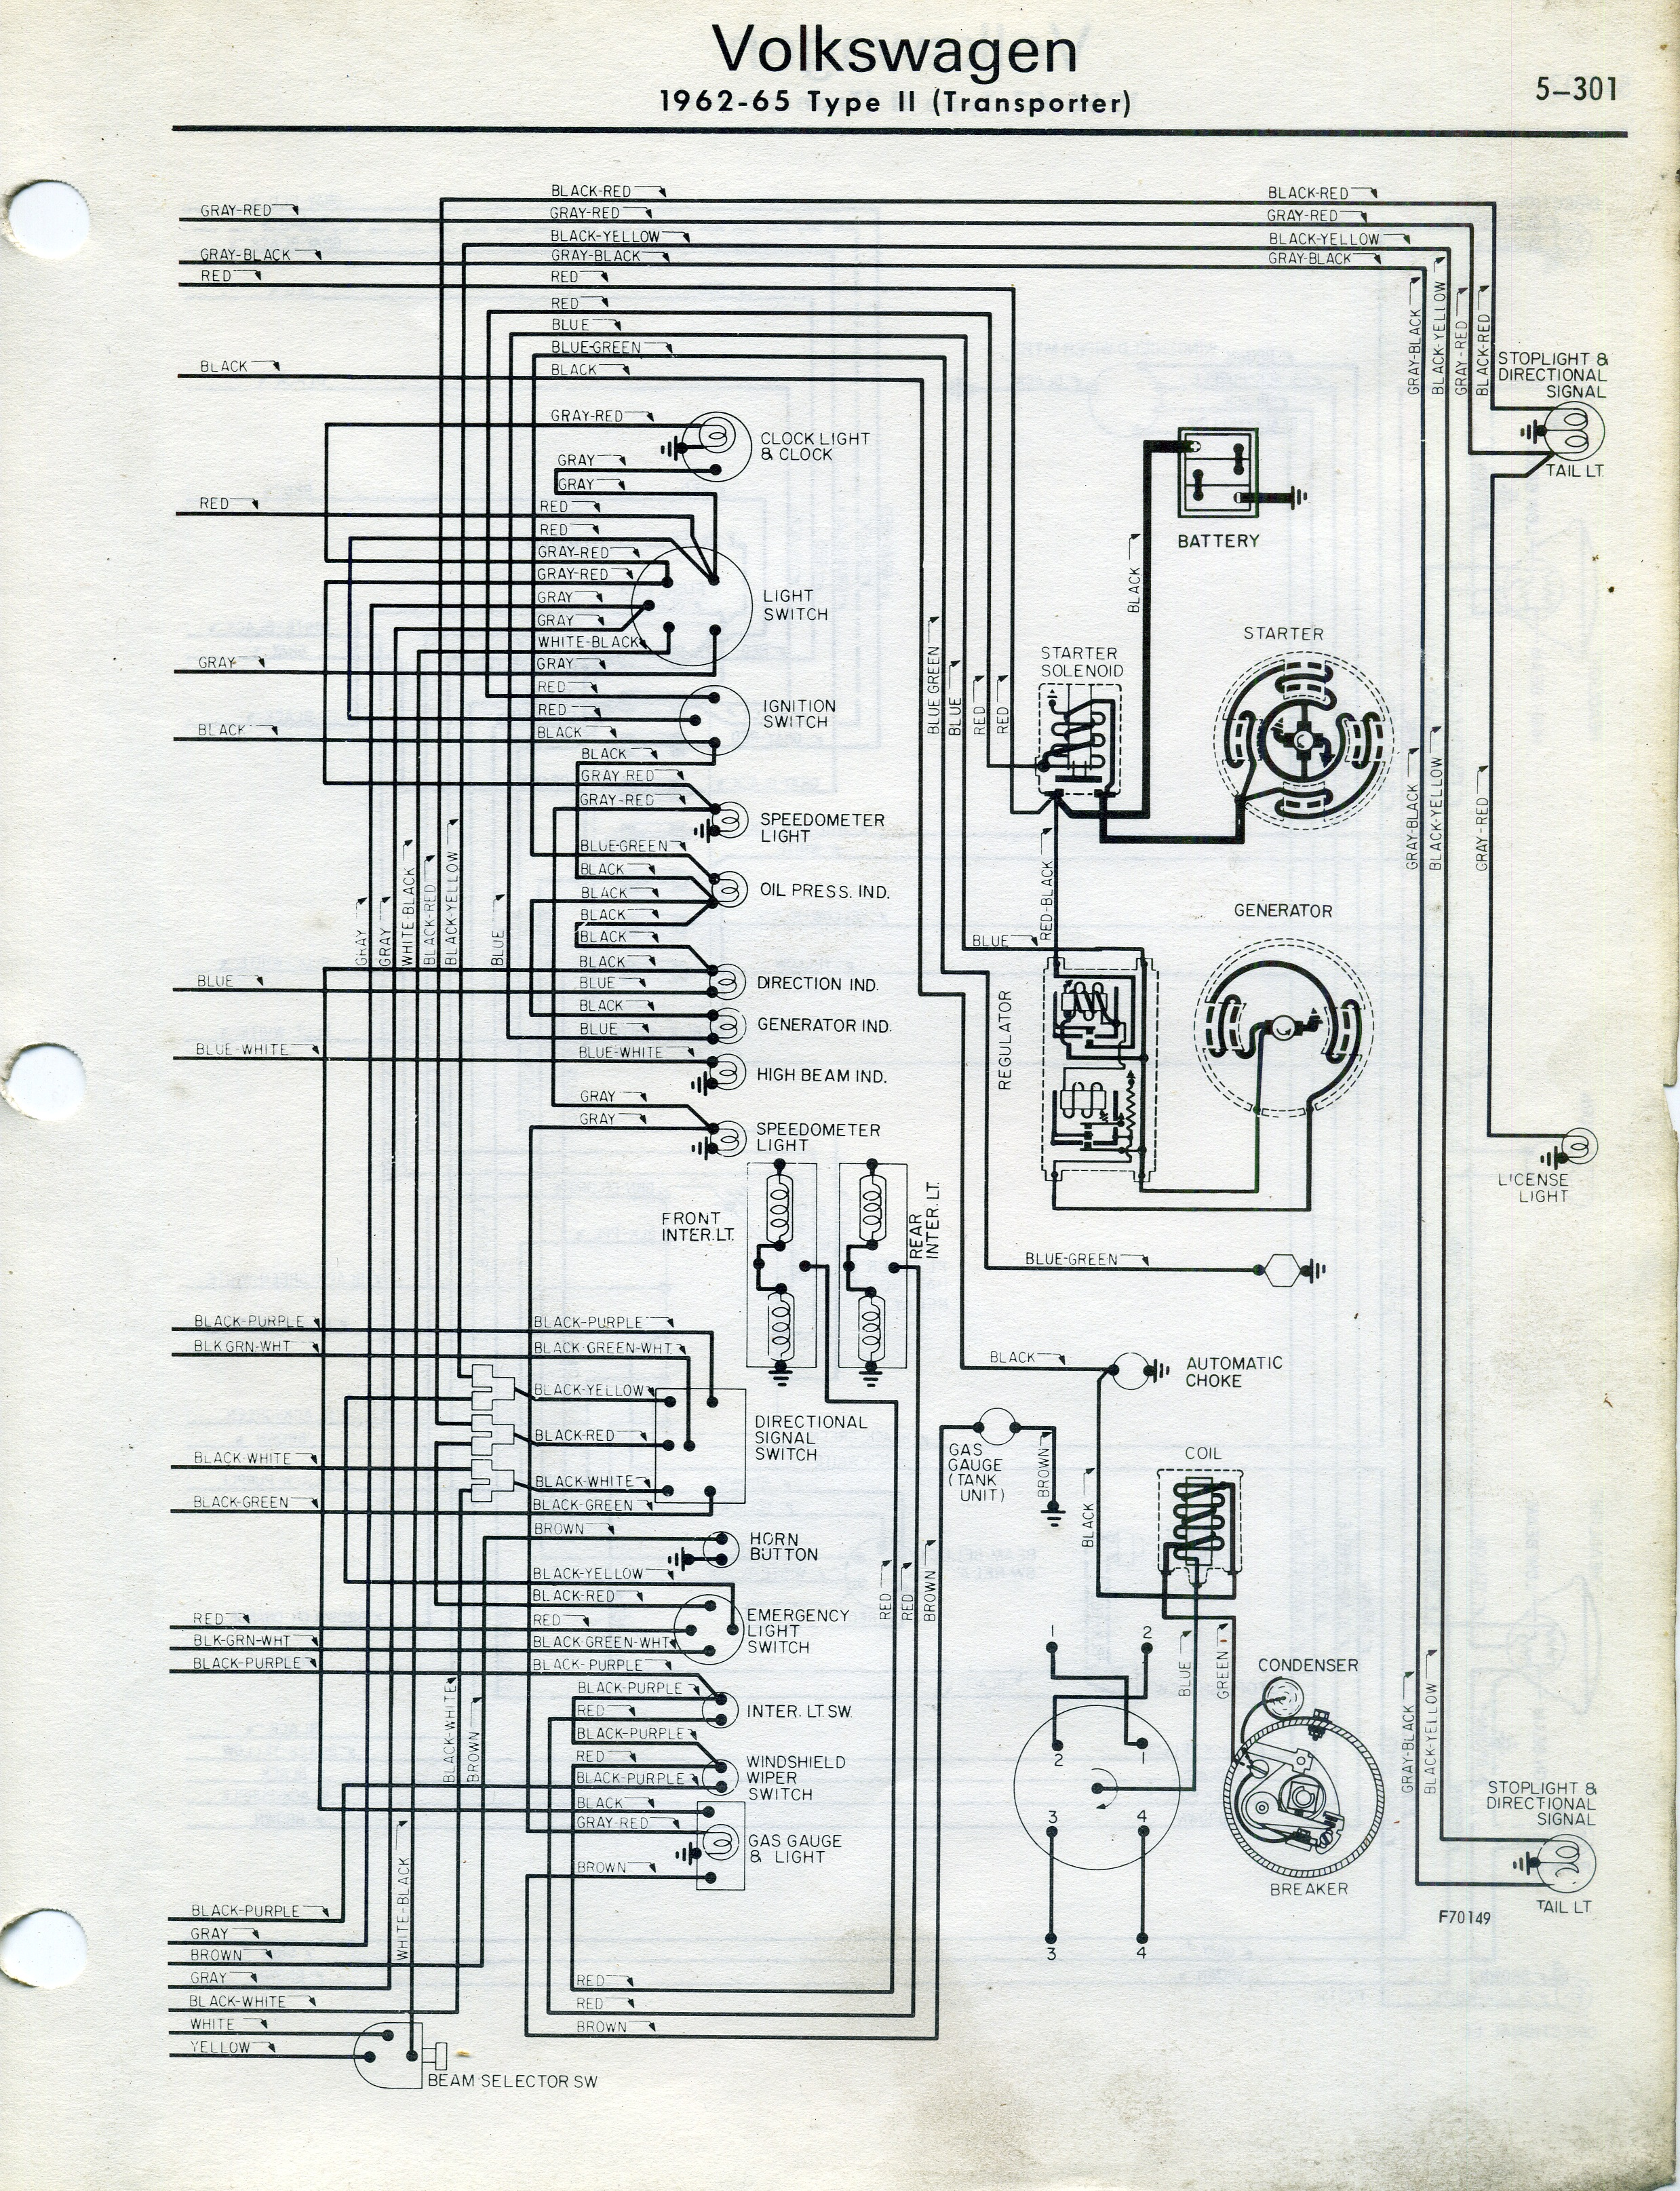 automotive wiring diagrams page 16 of 301